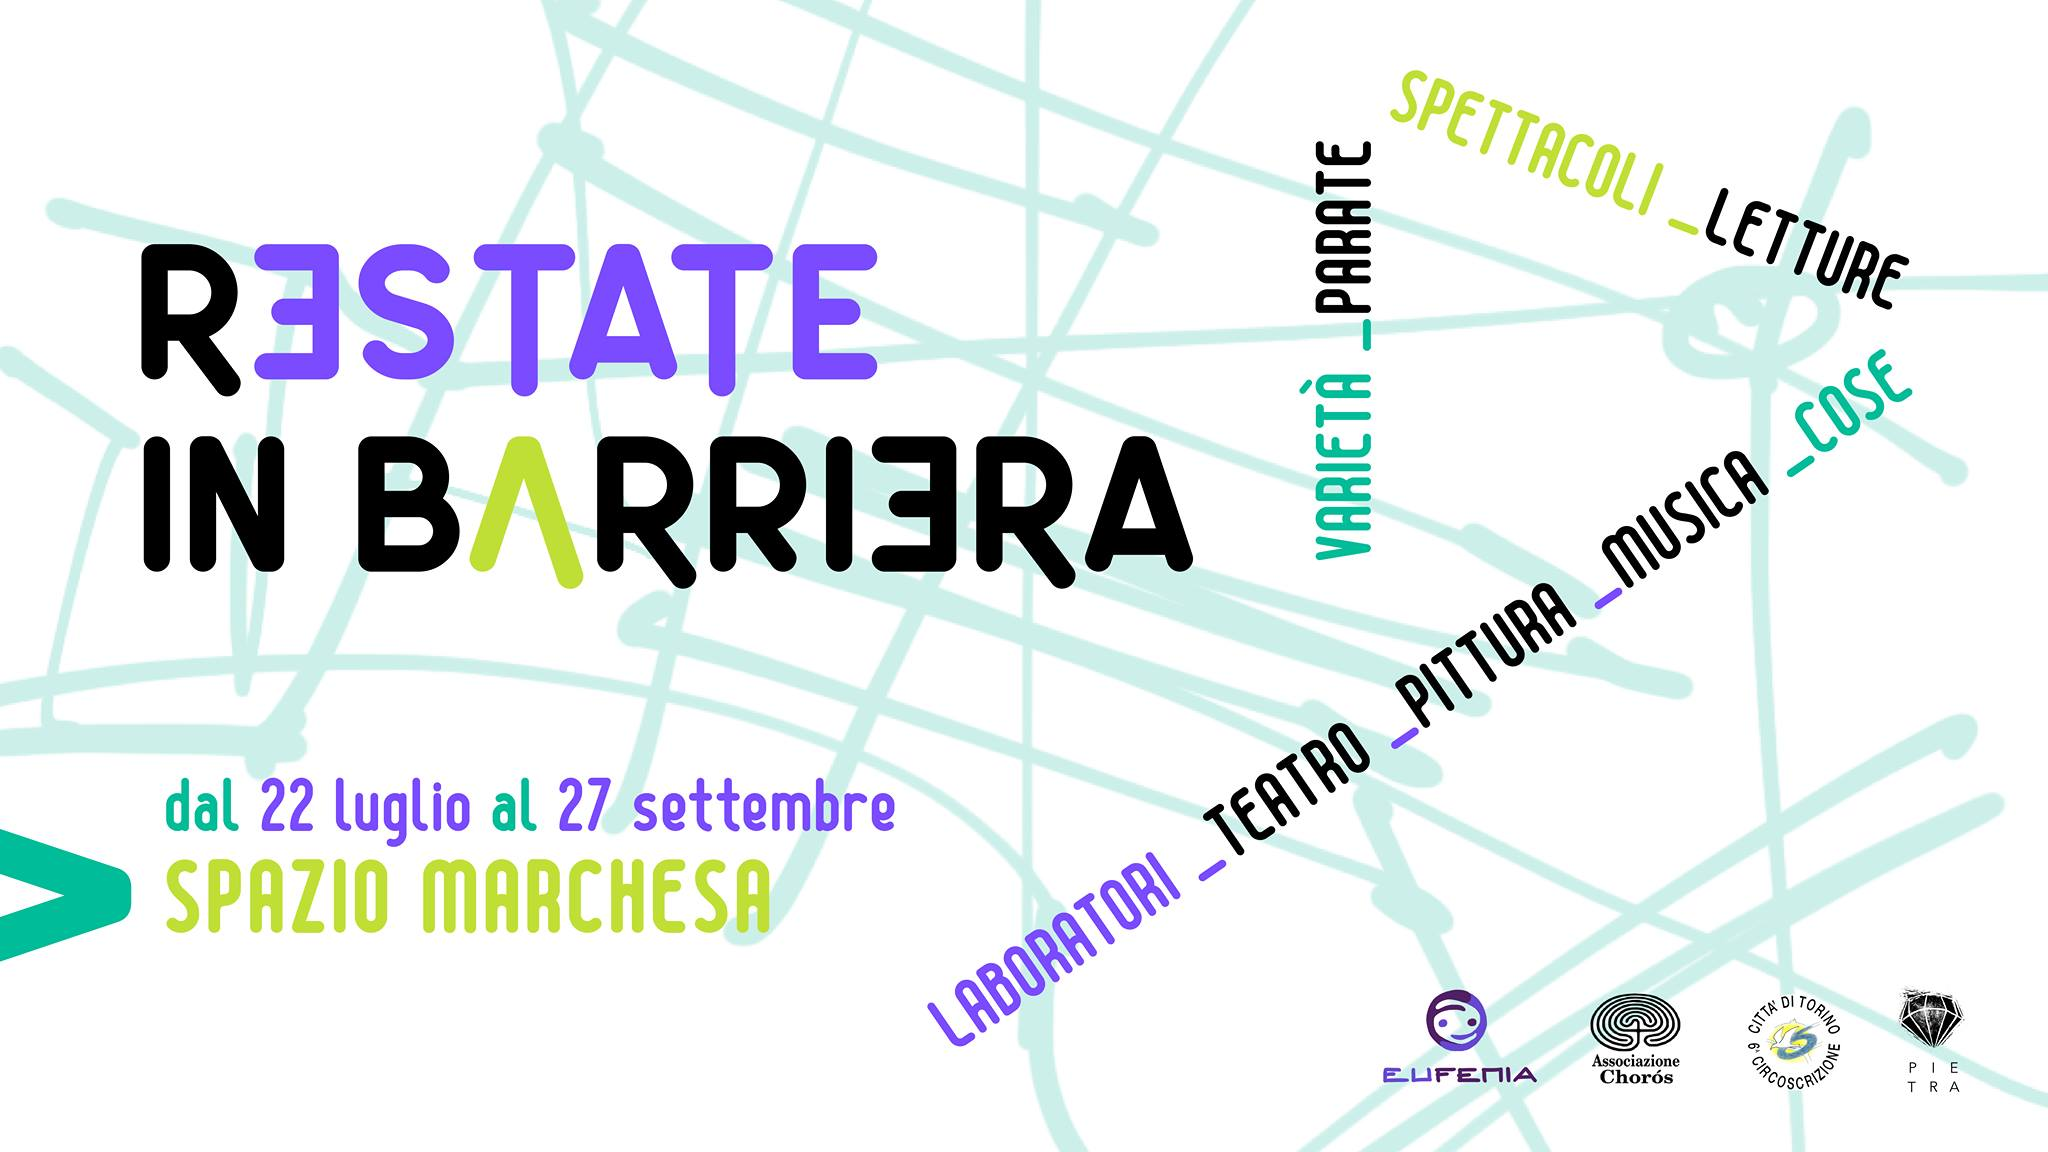 Restate in Barriera - Laboratori artistici nel weekend